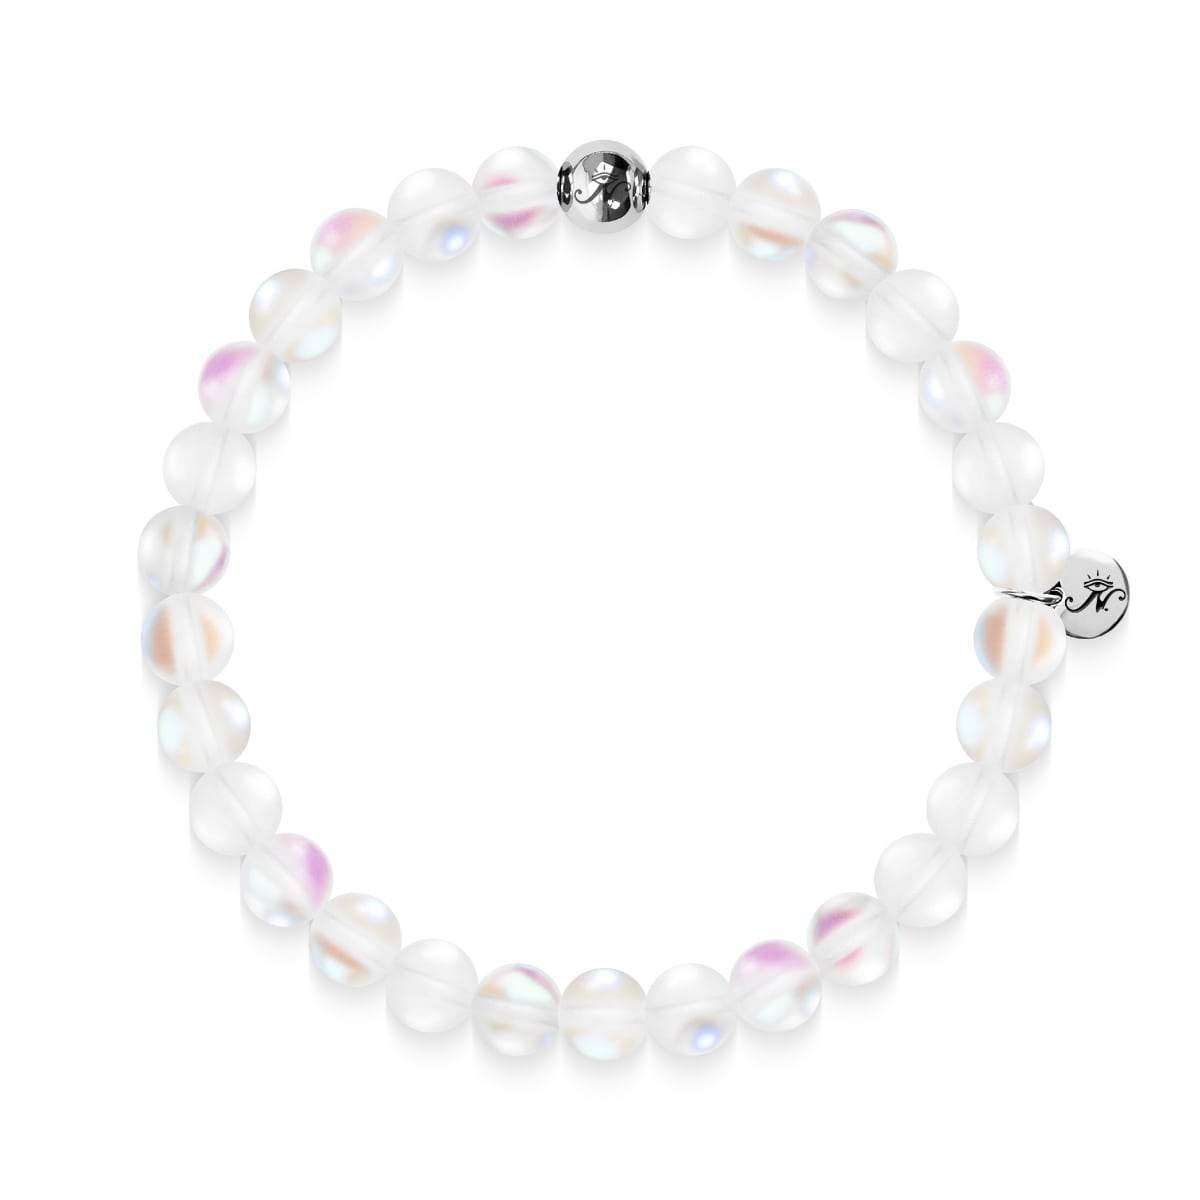 White | .925 Sterling Silver | Mermaid Glass Bead Bracelet